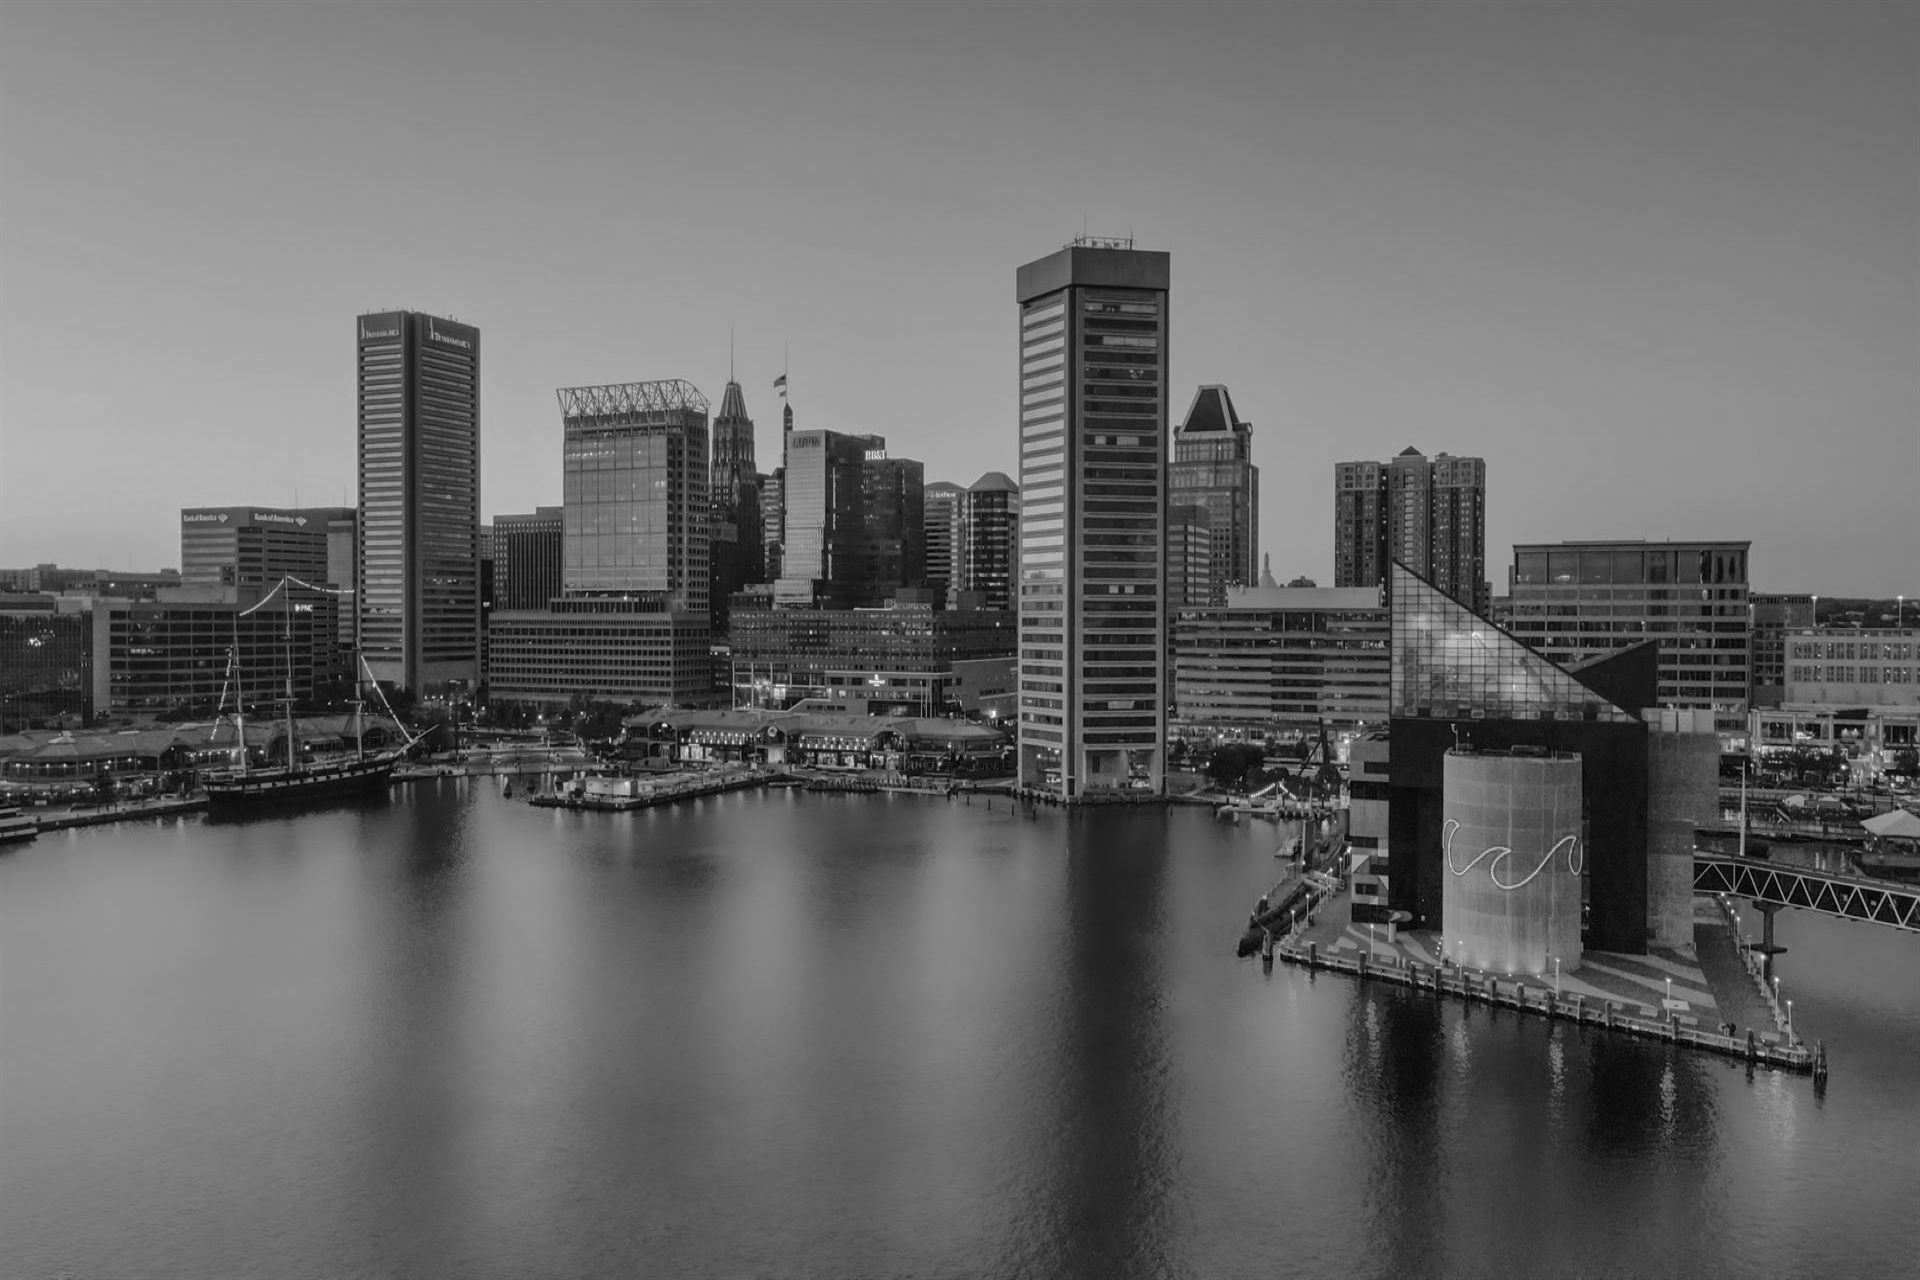 Baltimore city skyline in black and white